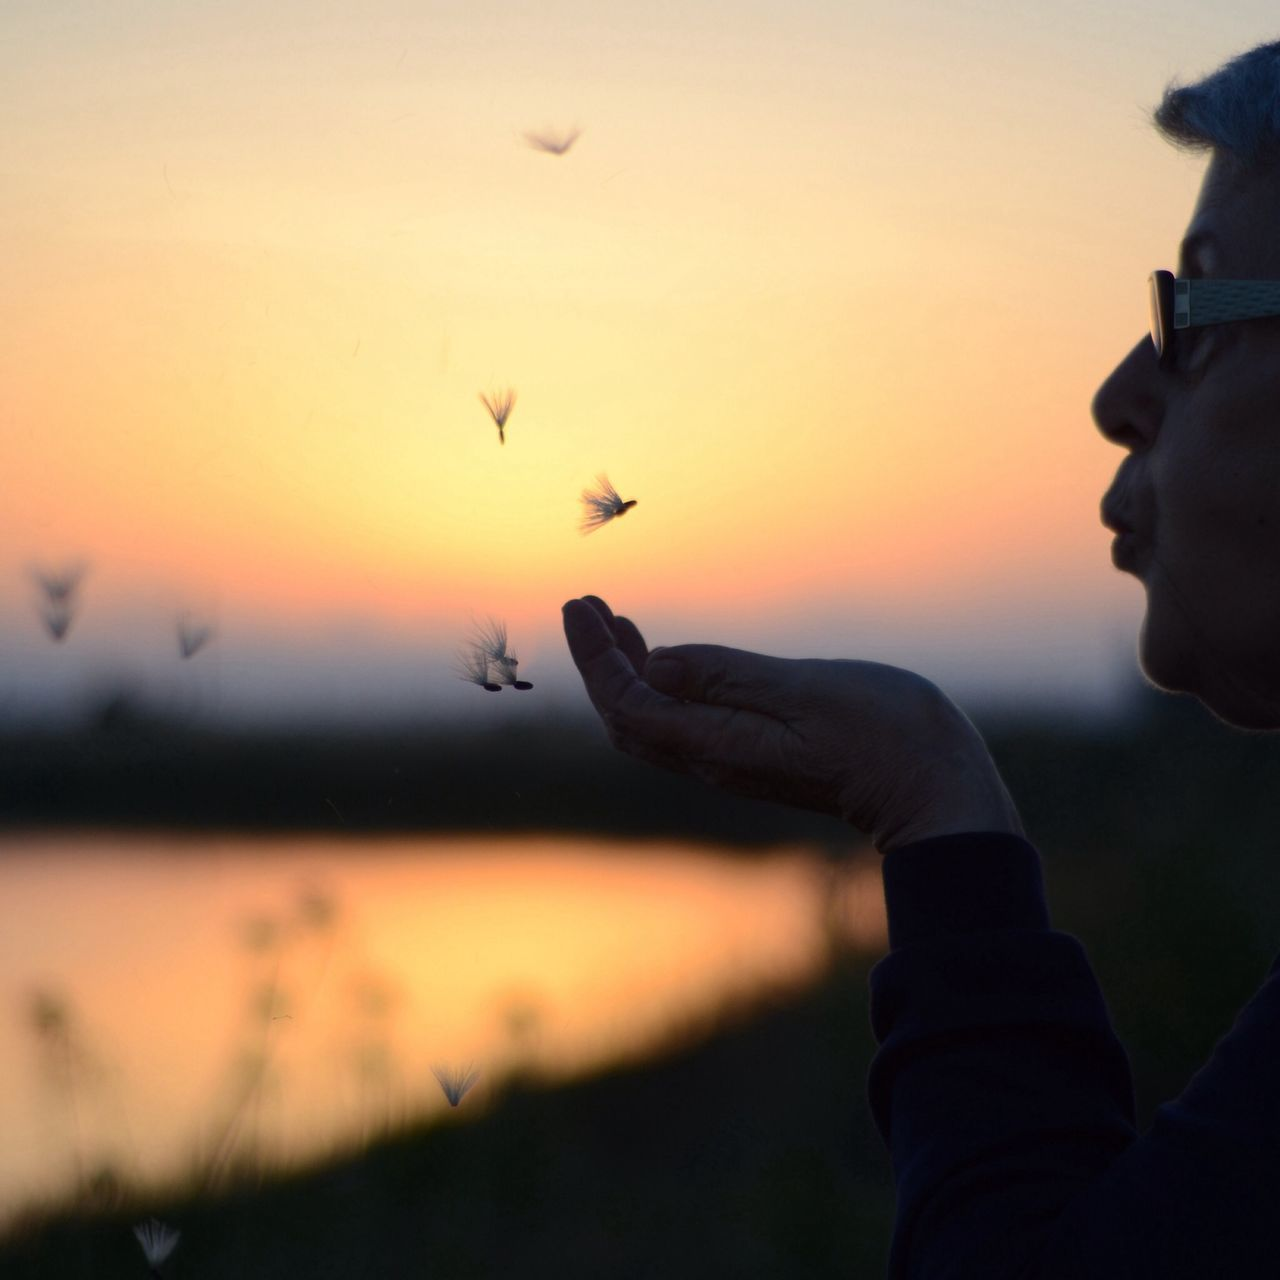 Person blowing feathers against sky during sunset